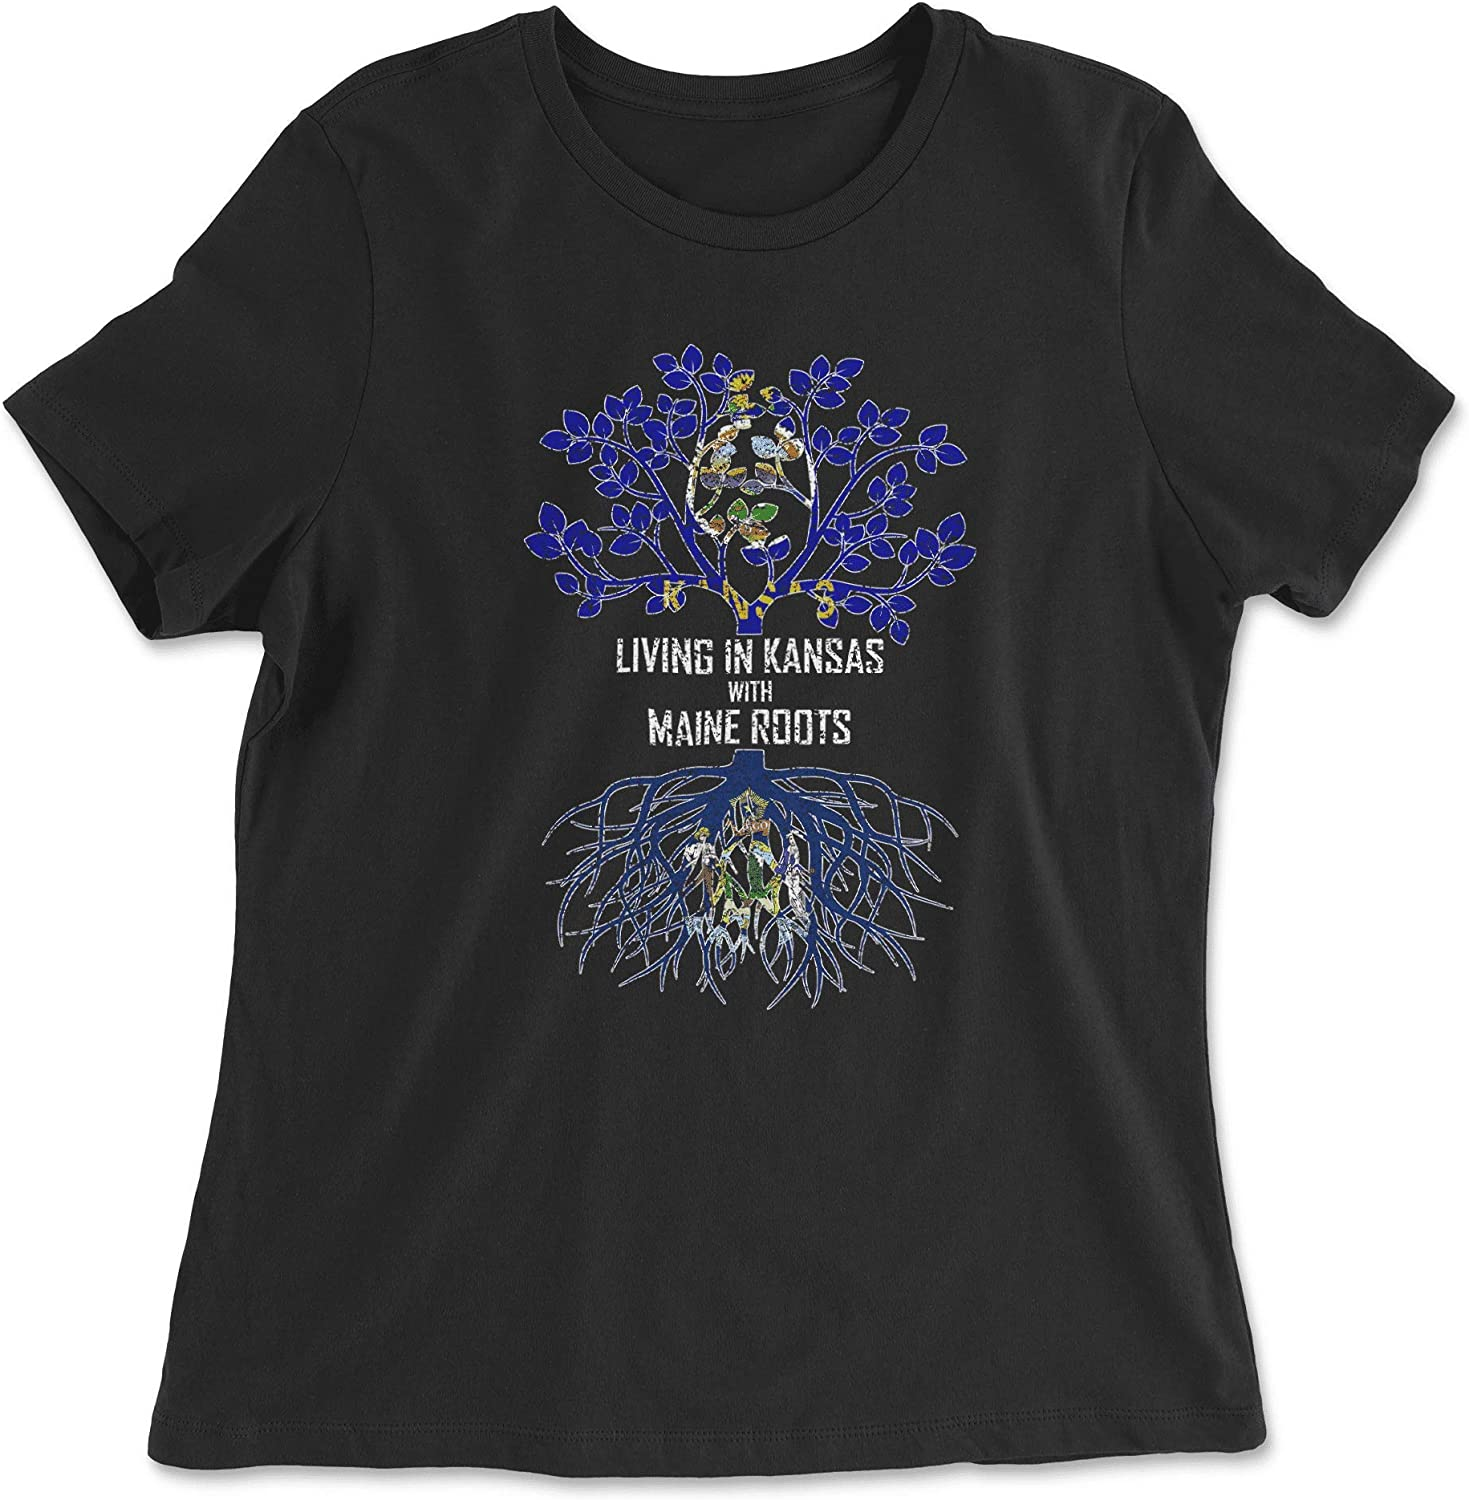 HARD EDGE DESIGN Women's Living in Kansas with Maine Roots T-Shirt